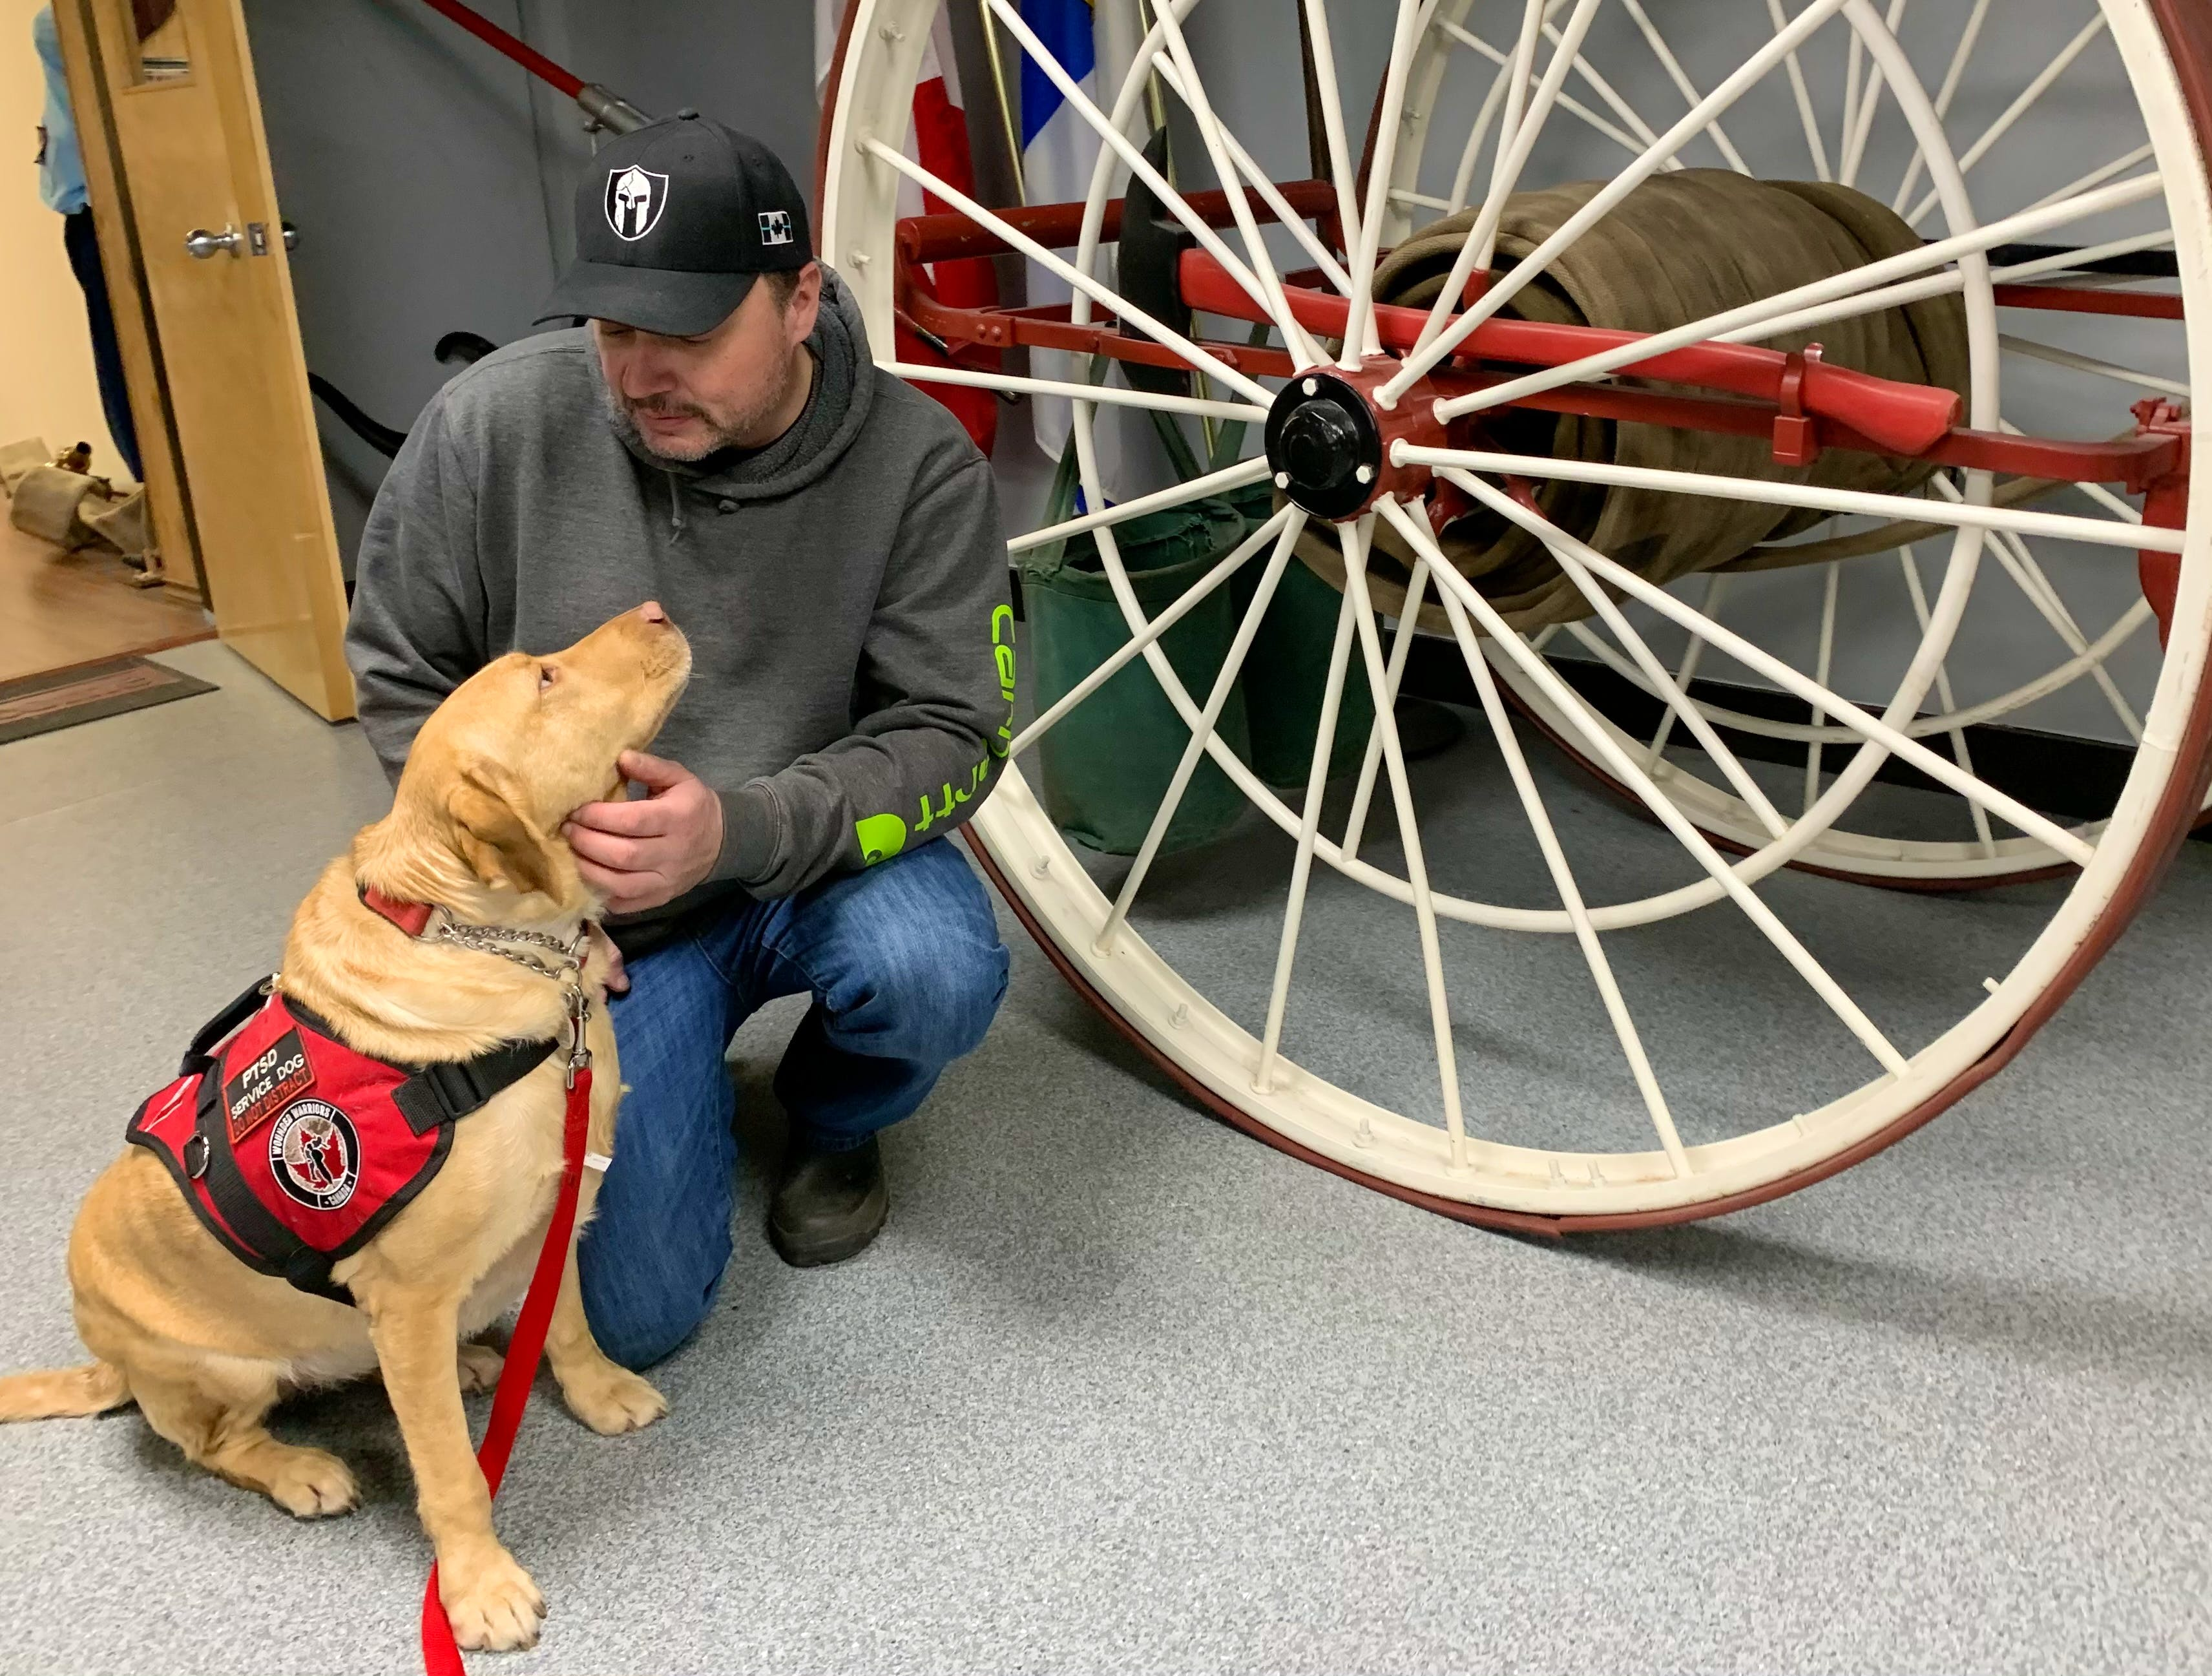 Volunteer firefighter Doug Pynch says Catie, his PTSD service dog, wasn't well-trained when he received her in 2018. He said he knew something wasn't right, but he kept Catie as they tried to help her become a proper service dog.